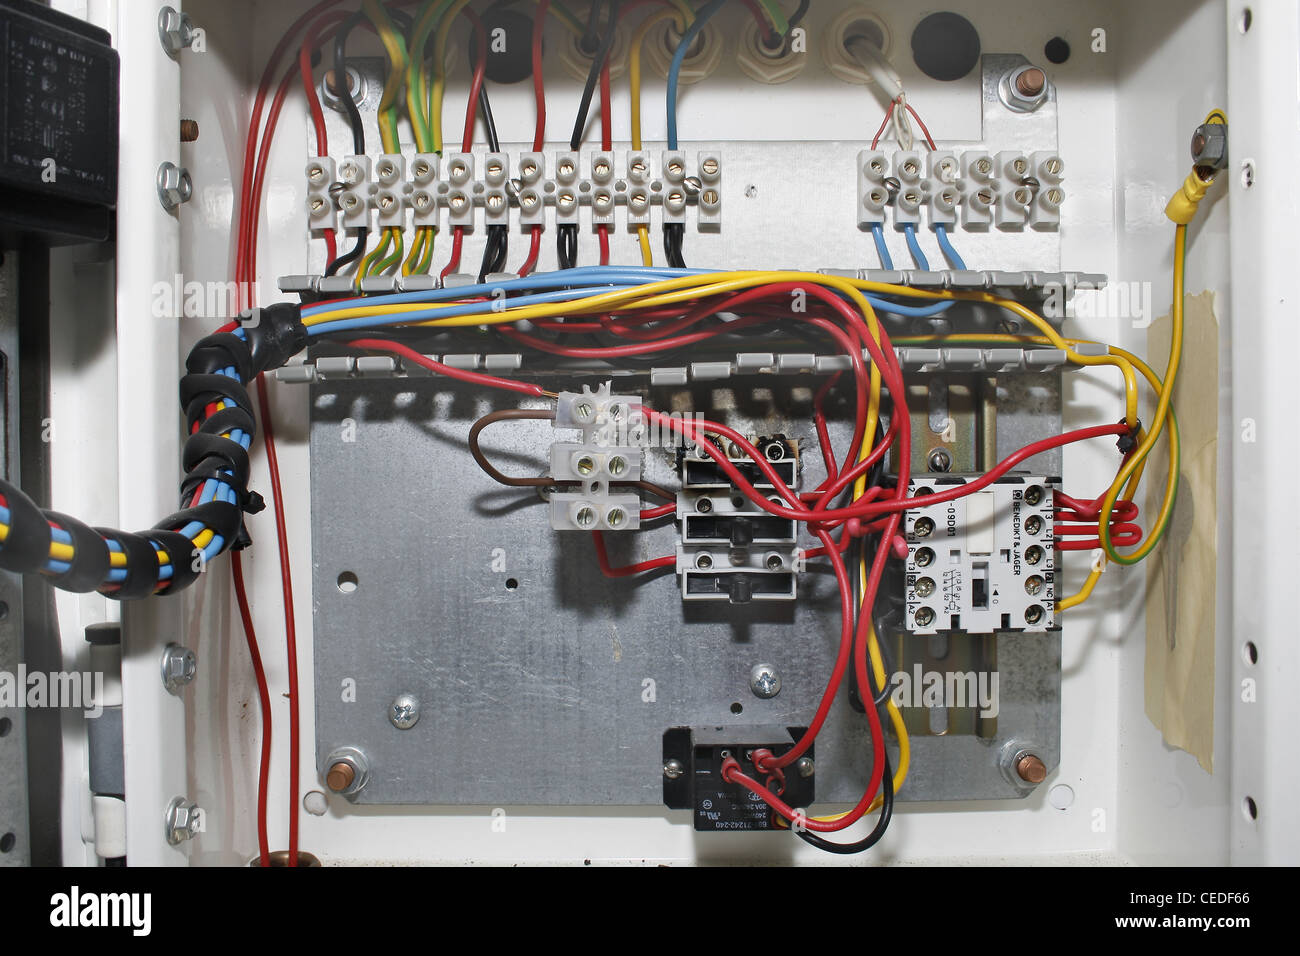 1999 Mustang Fuse Box Diagram Wires Inside Power Supply Box Of Fridge Stock Photo